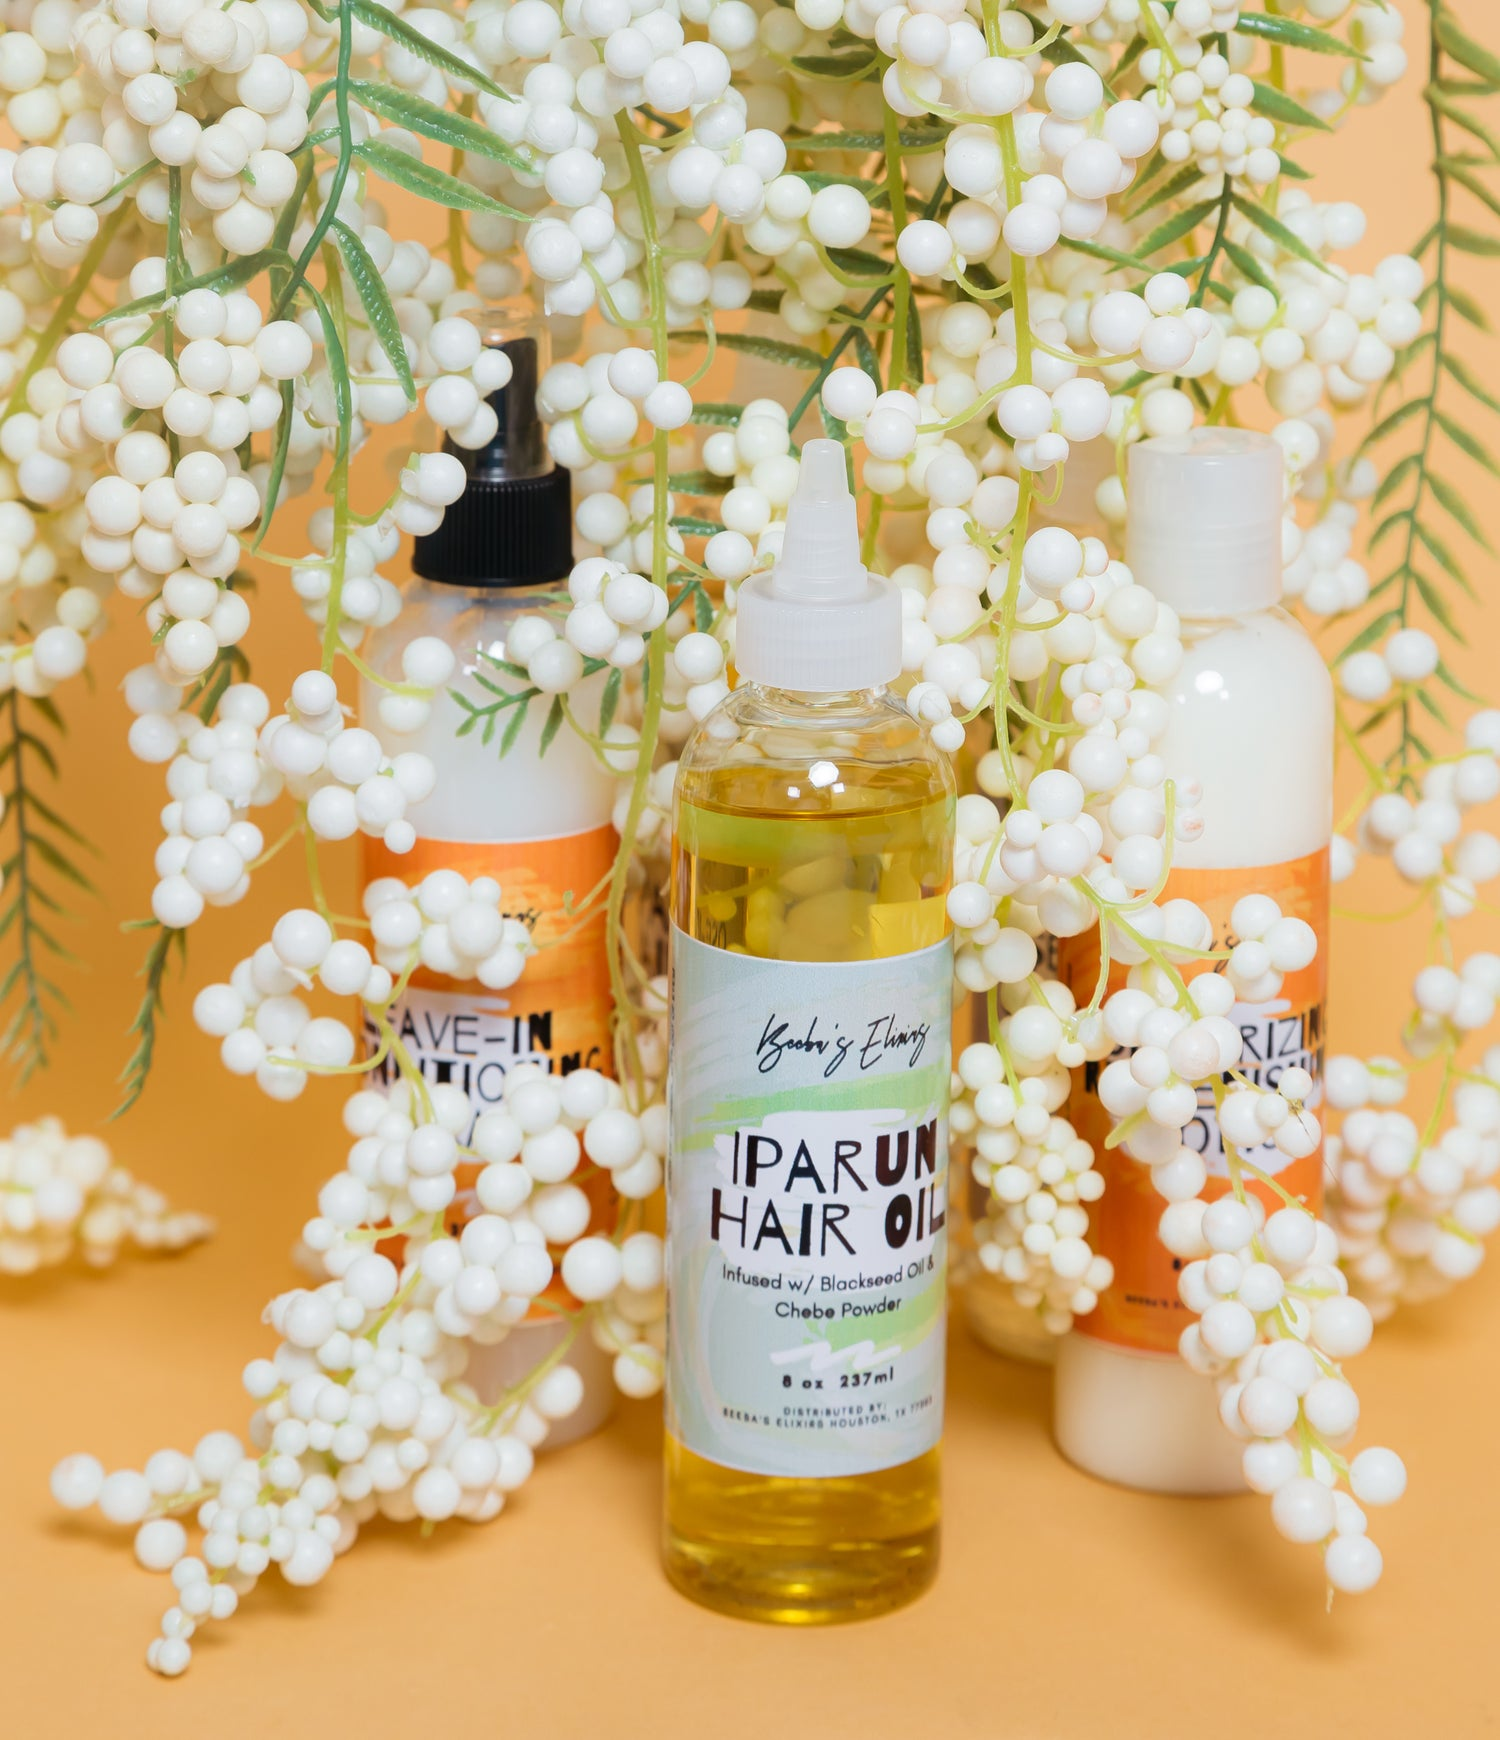 Image of Iparun (Hair Oil)